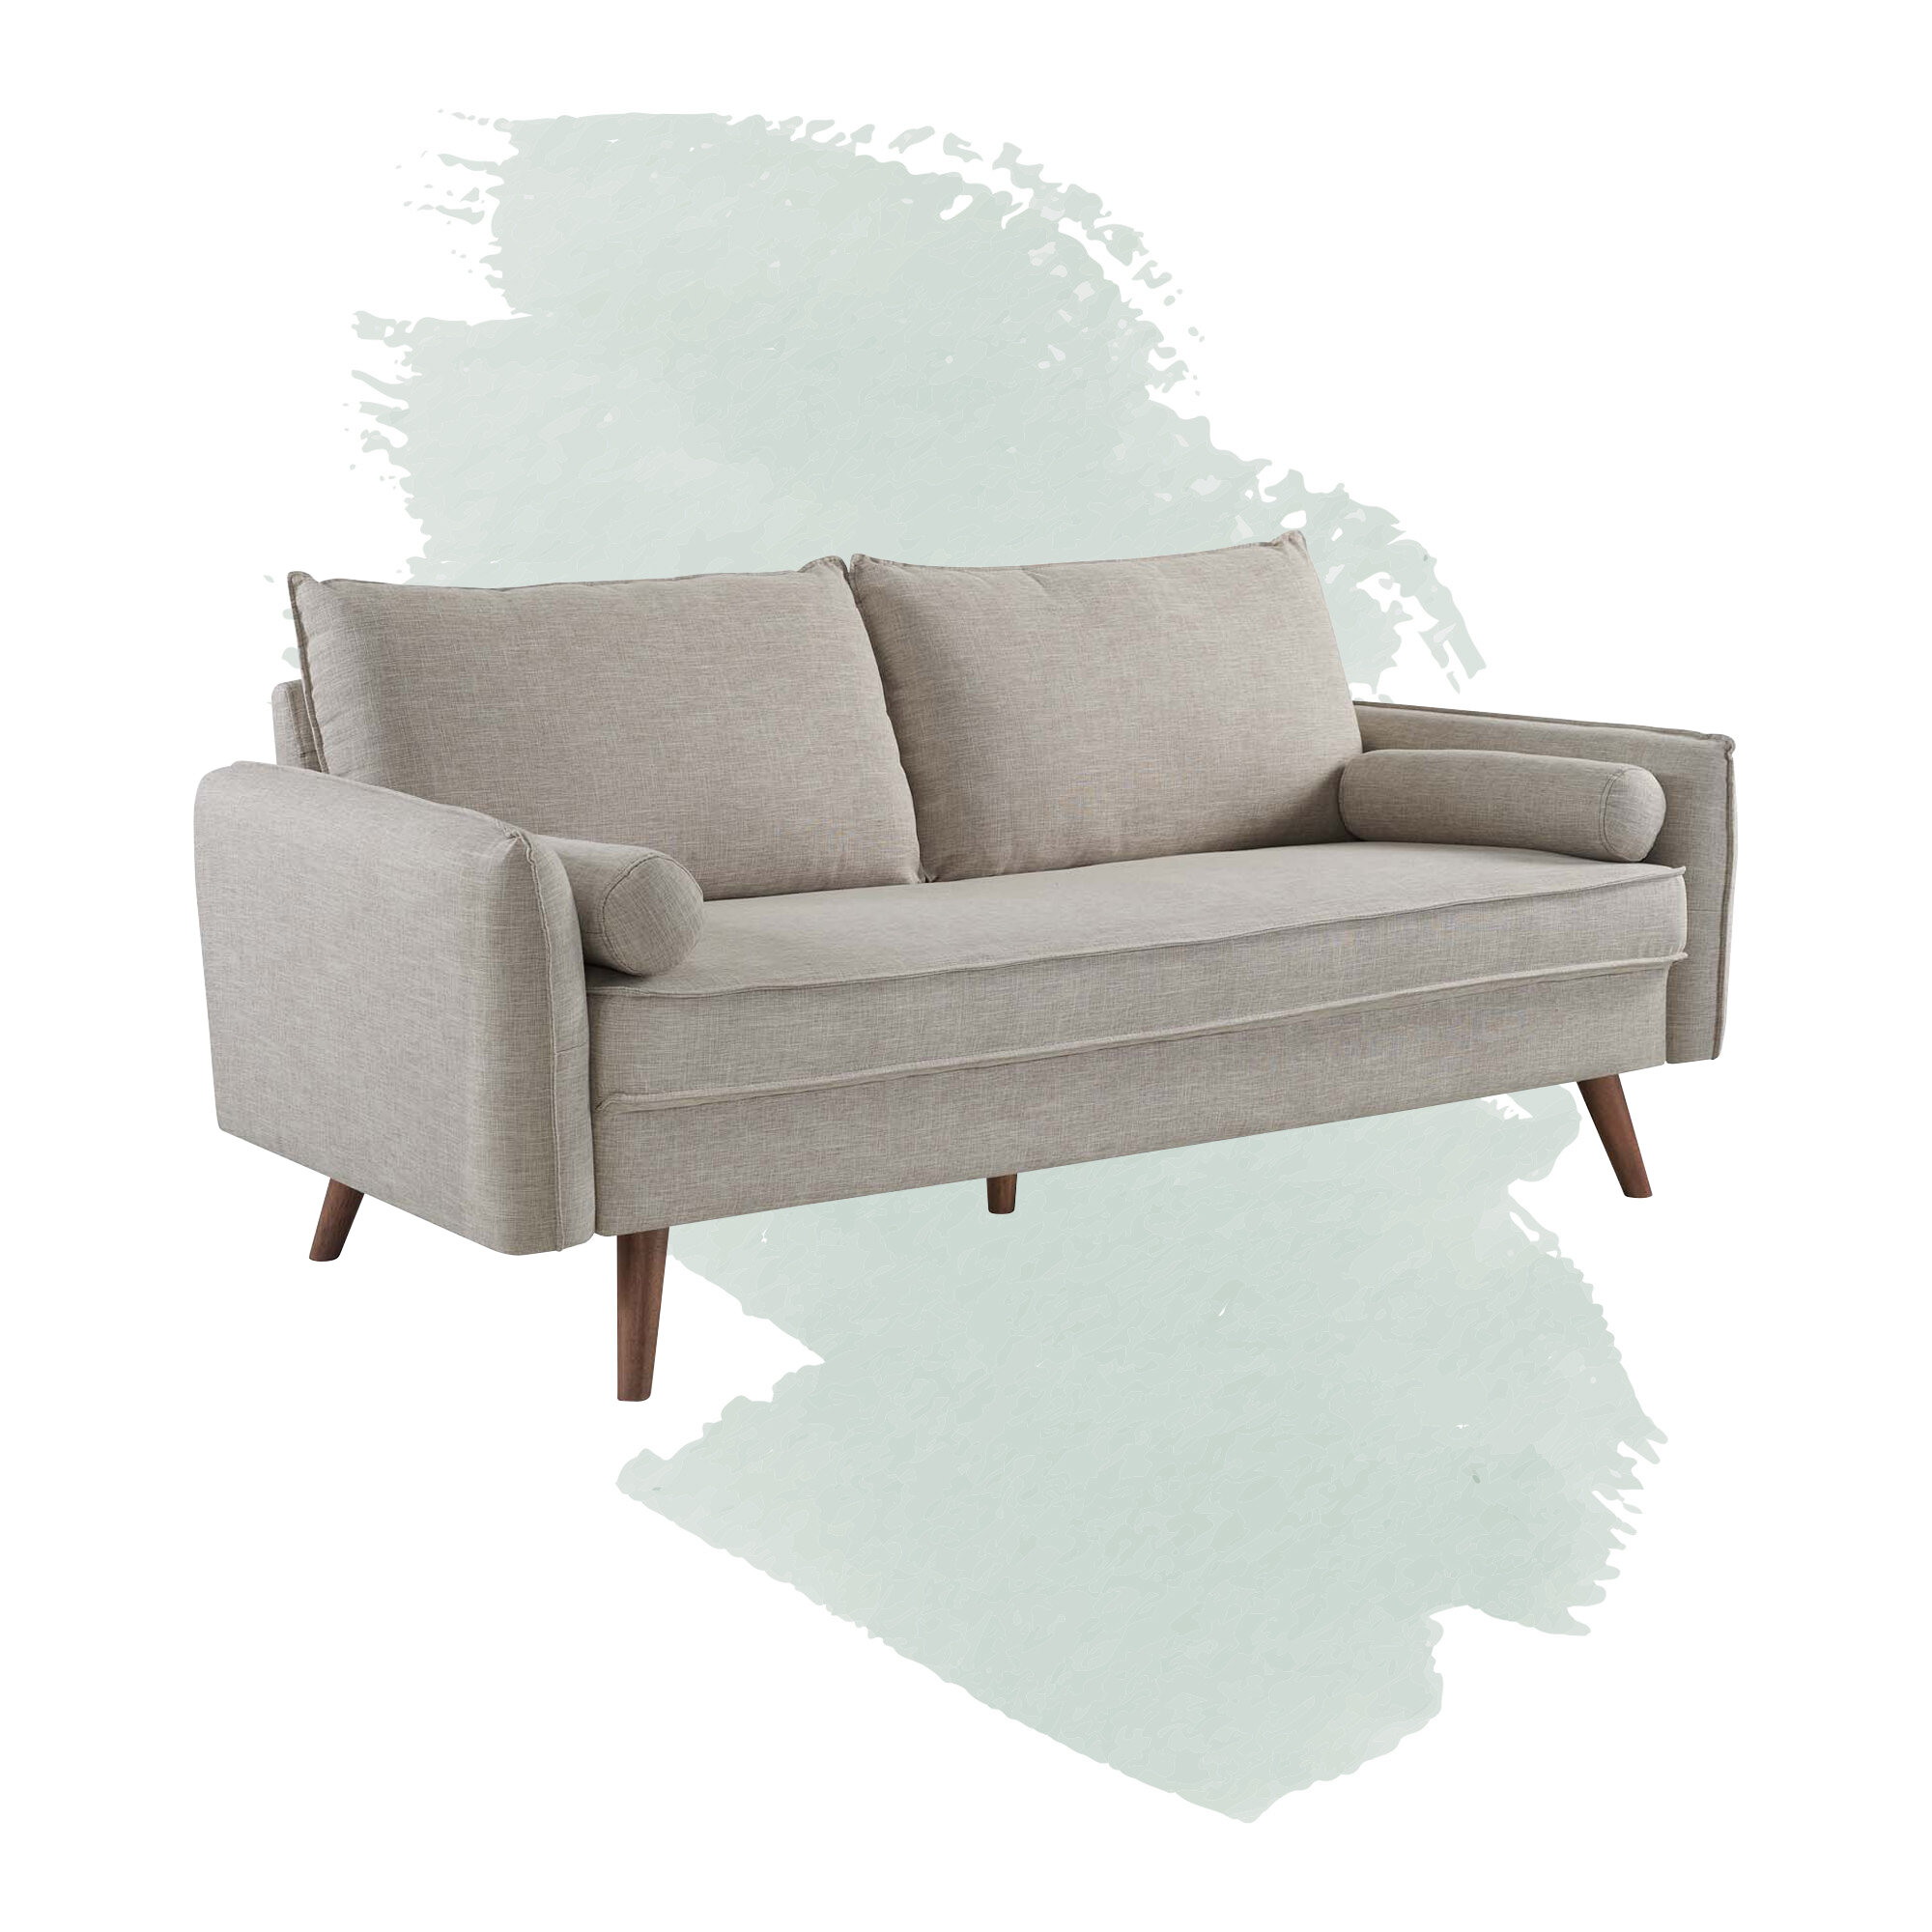 Foundstone Anton 70 Round Arm Sofa